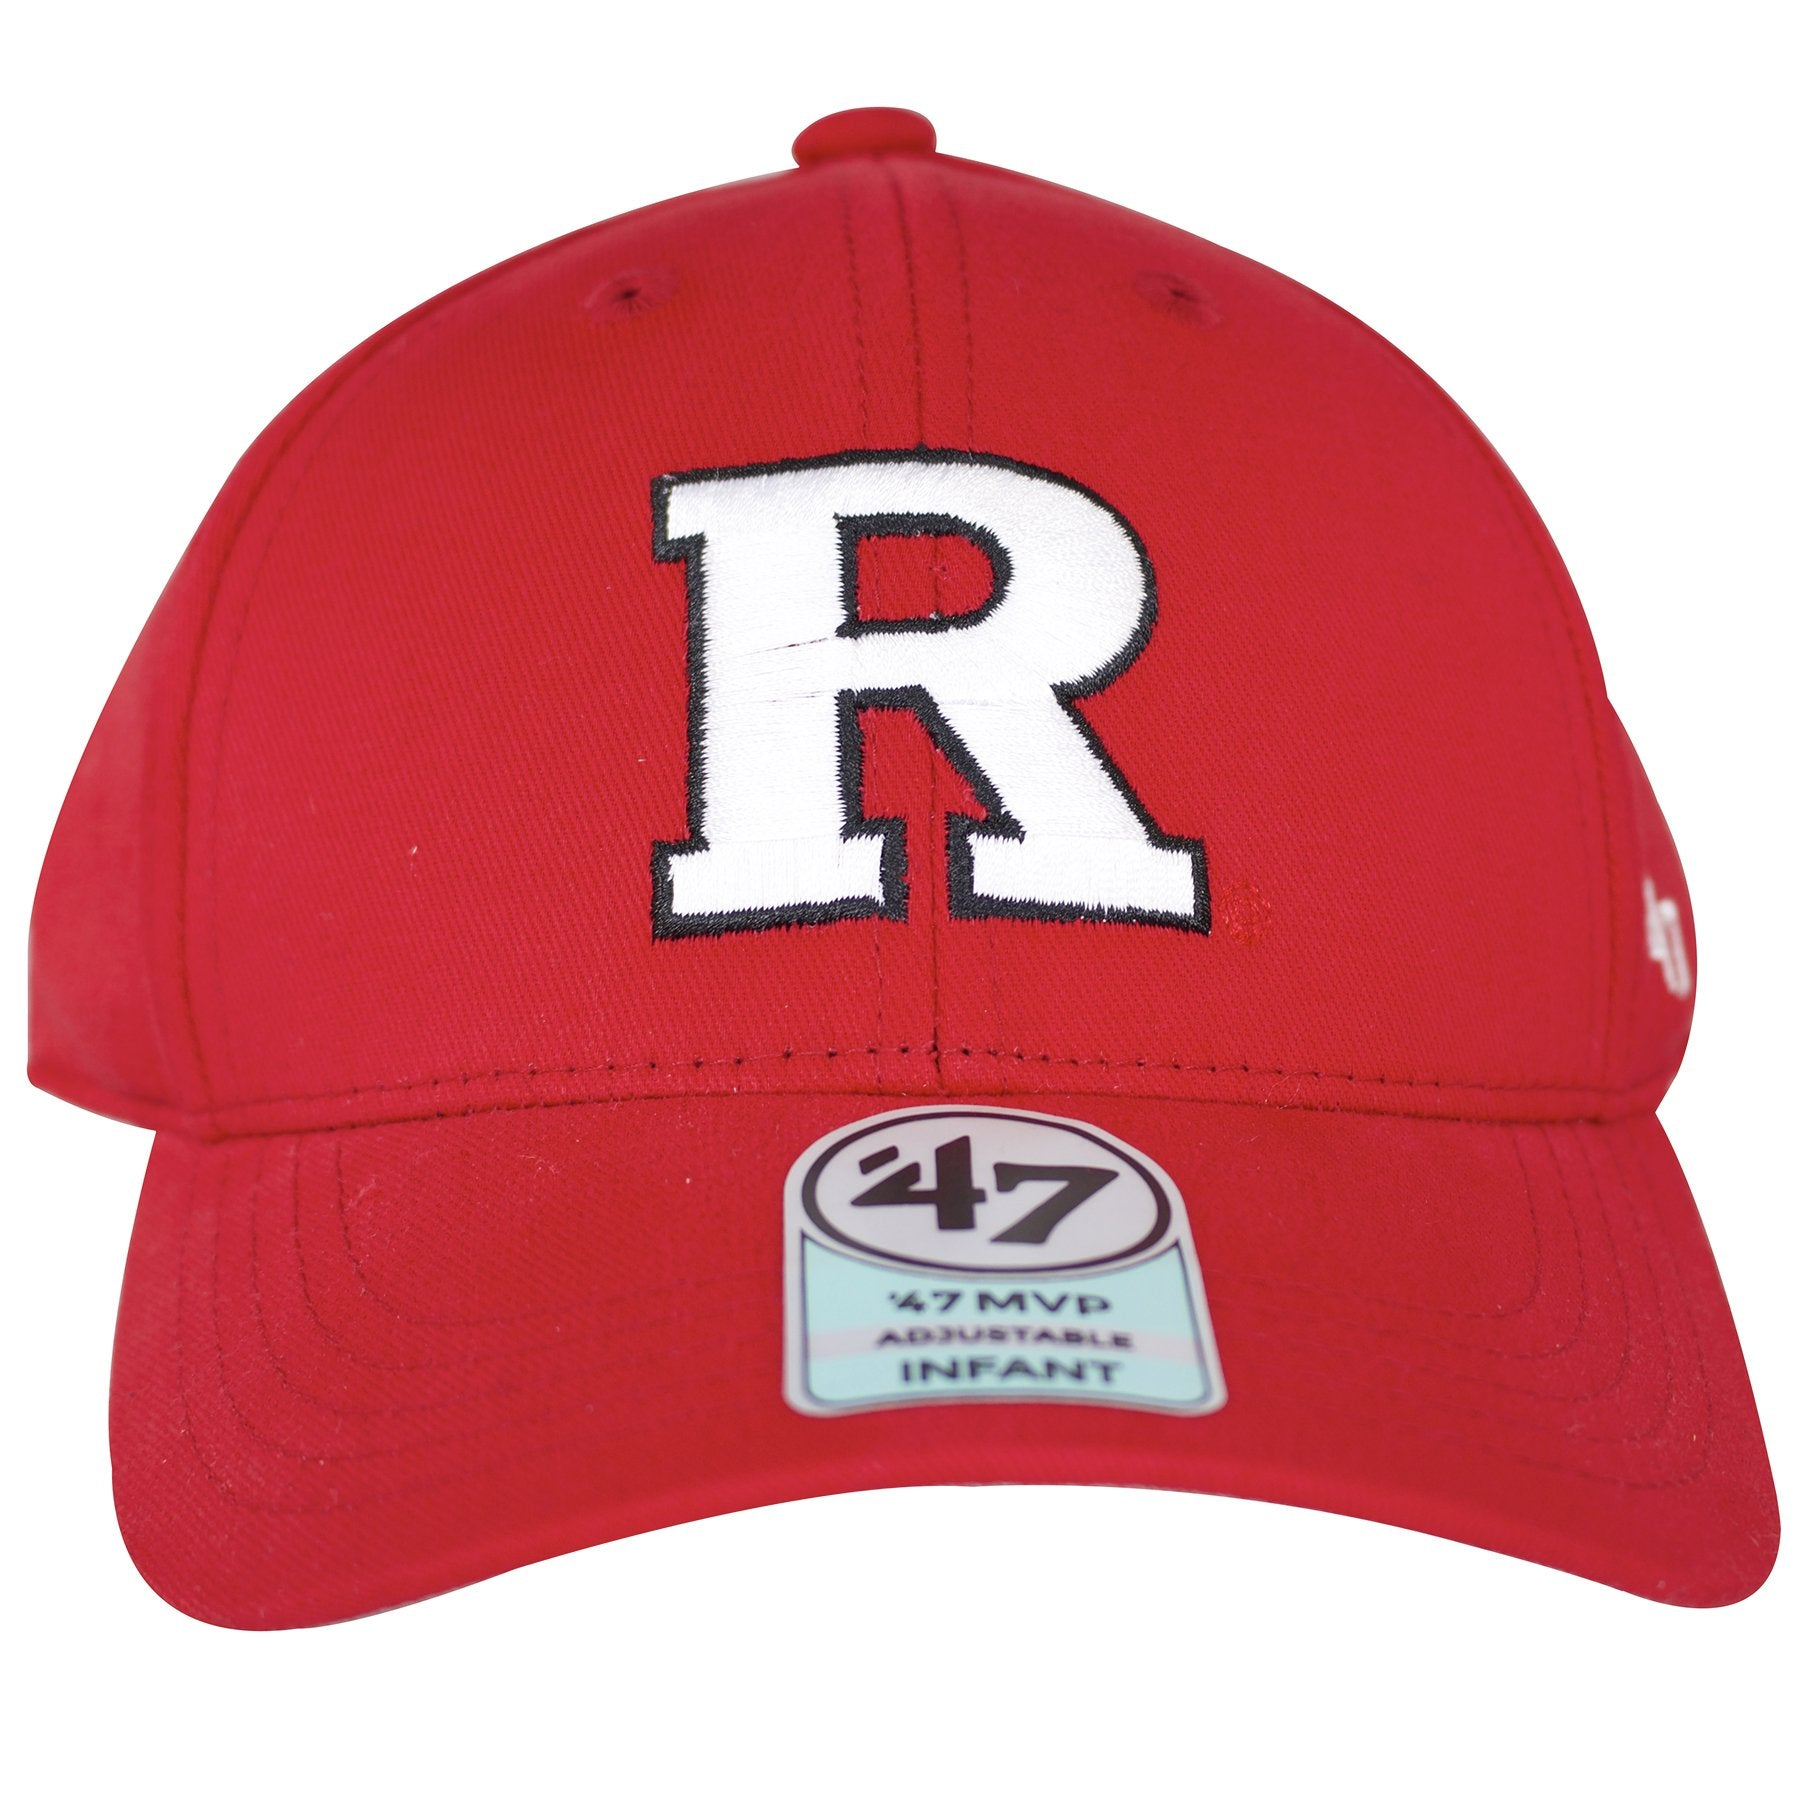 Letter R is embroidered in the front of this red Rutgers Scarlet Knights  kids dad hat 5245c72aa3d